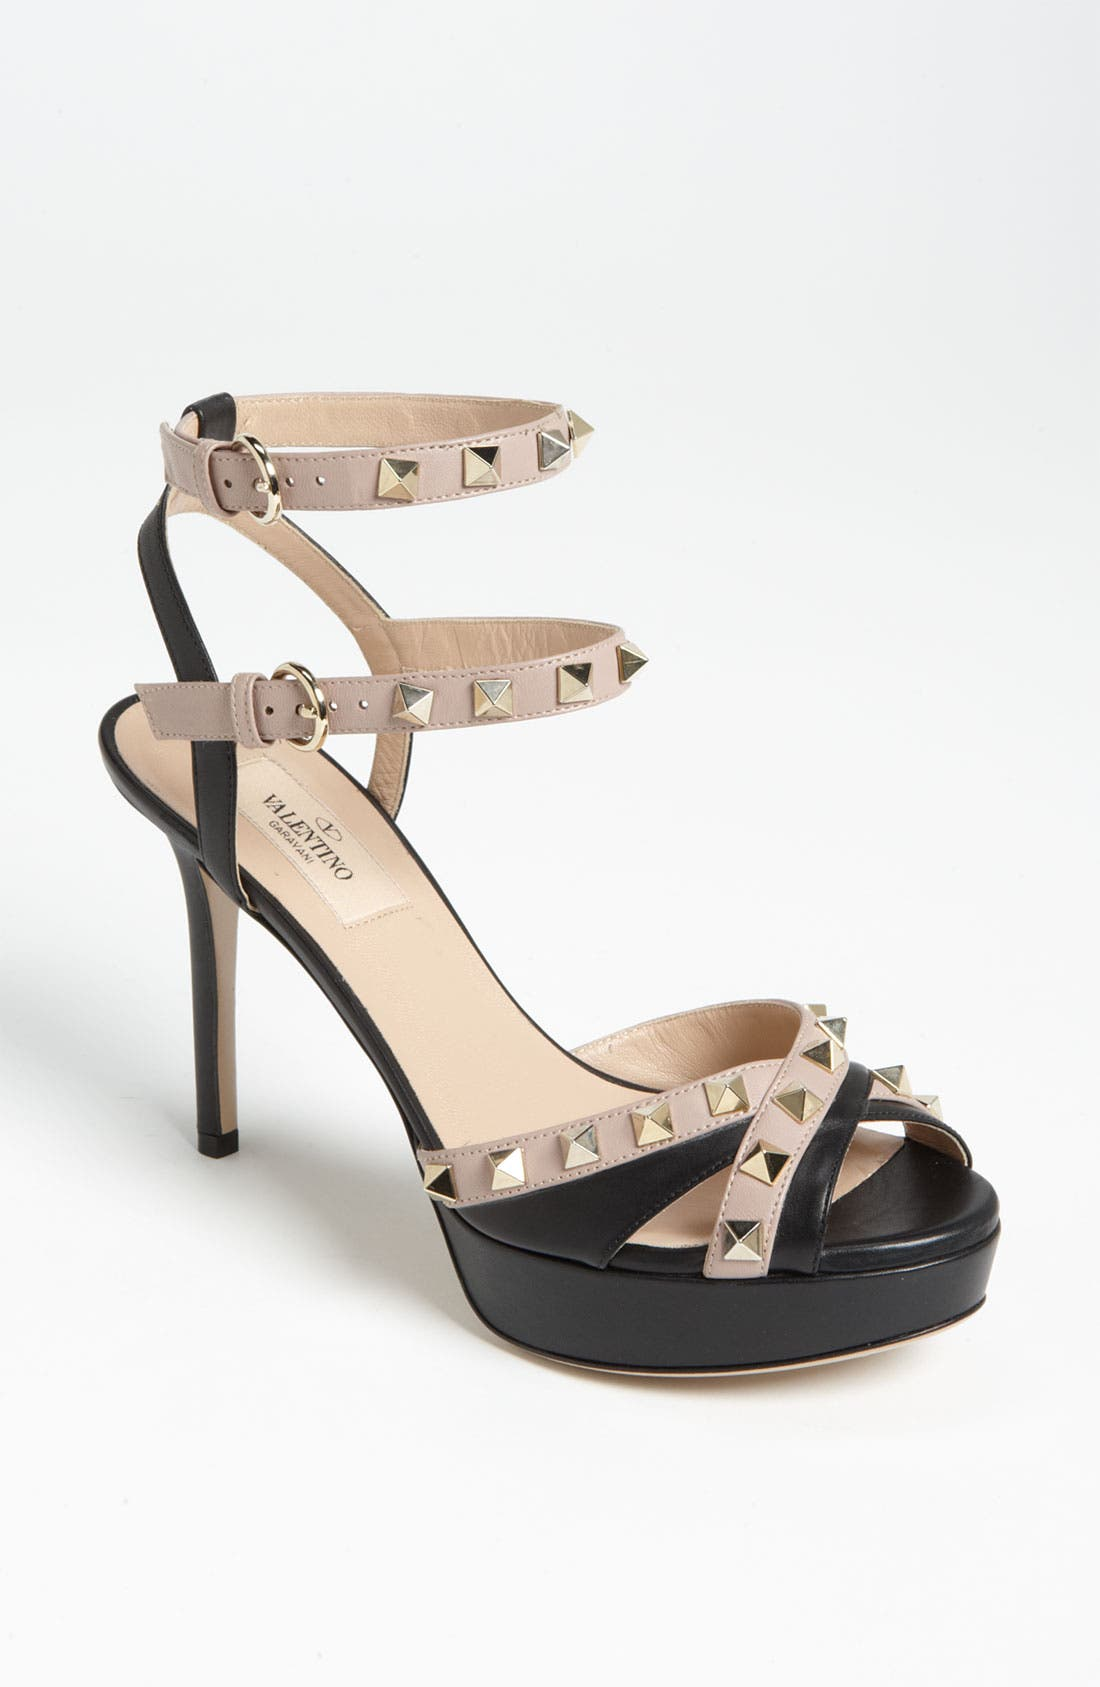 Alternate Image 1 Selected - VALENTINO GARAVANI 'Rockstud' Sandal